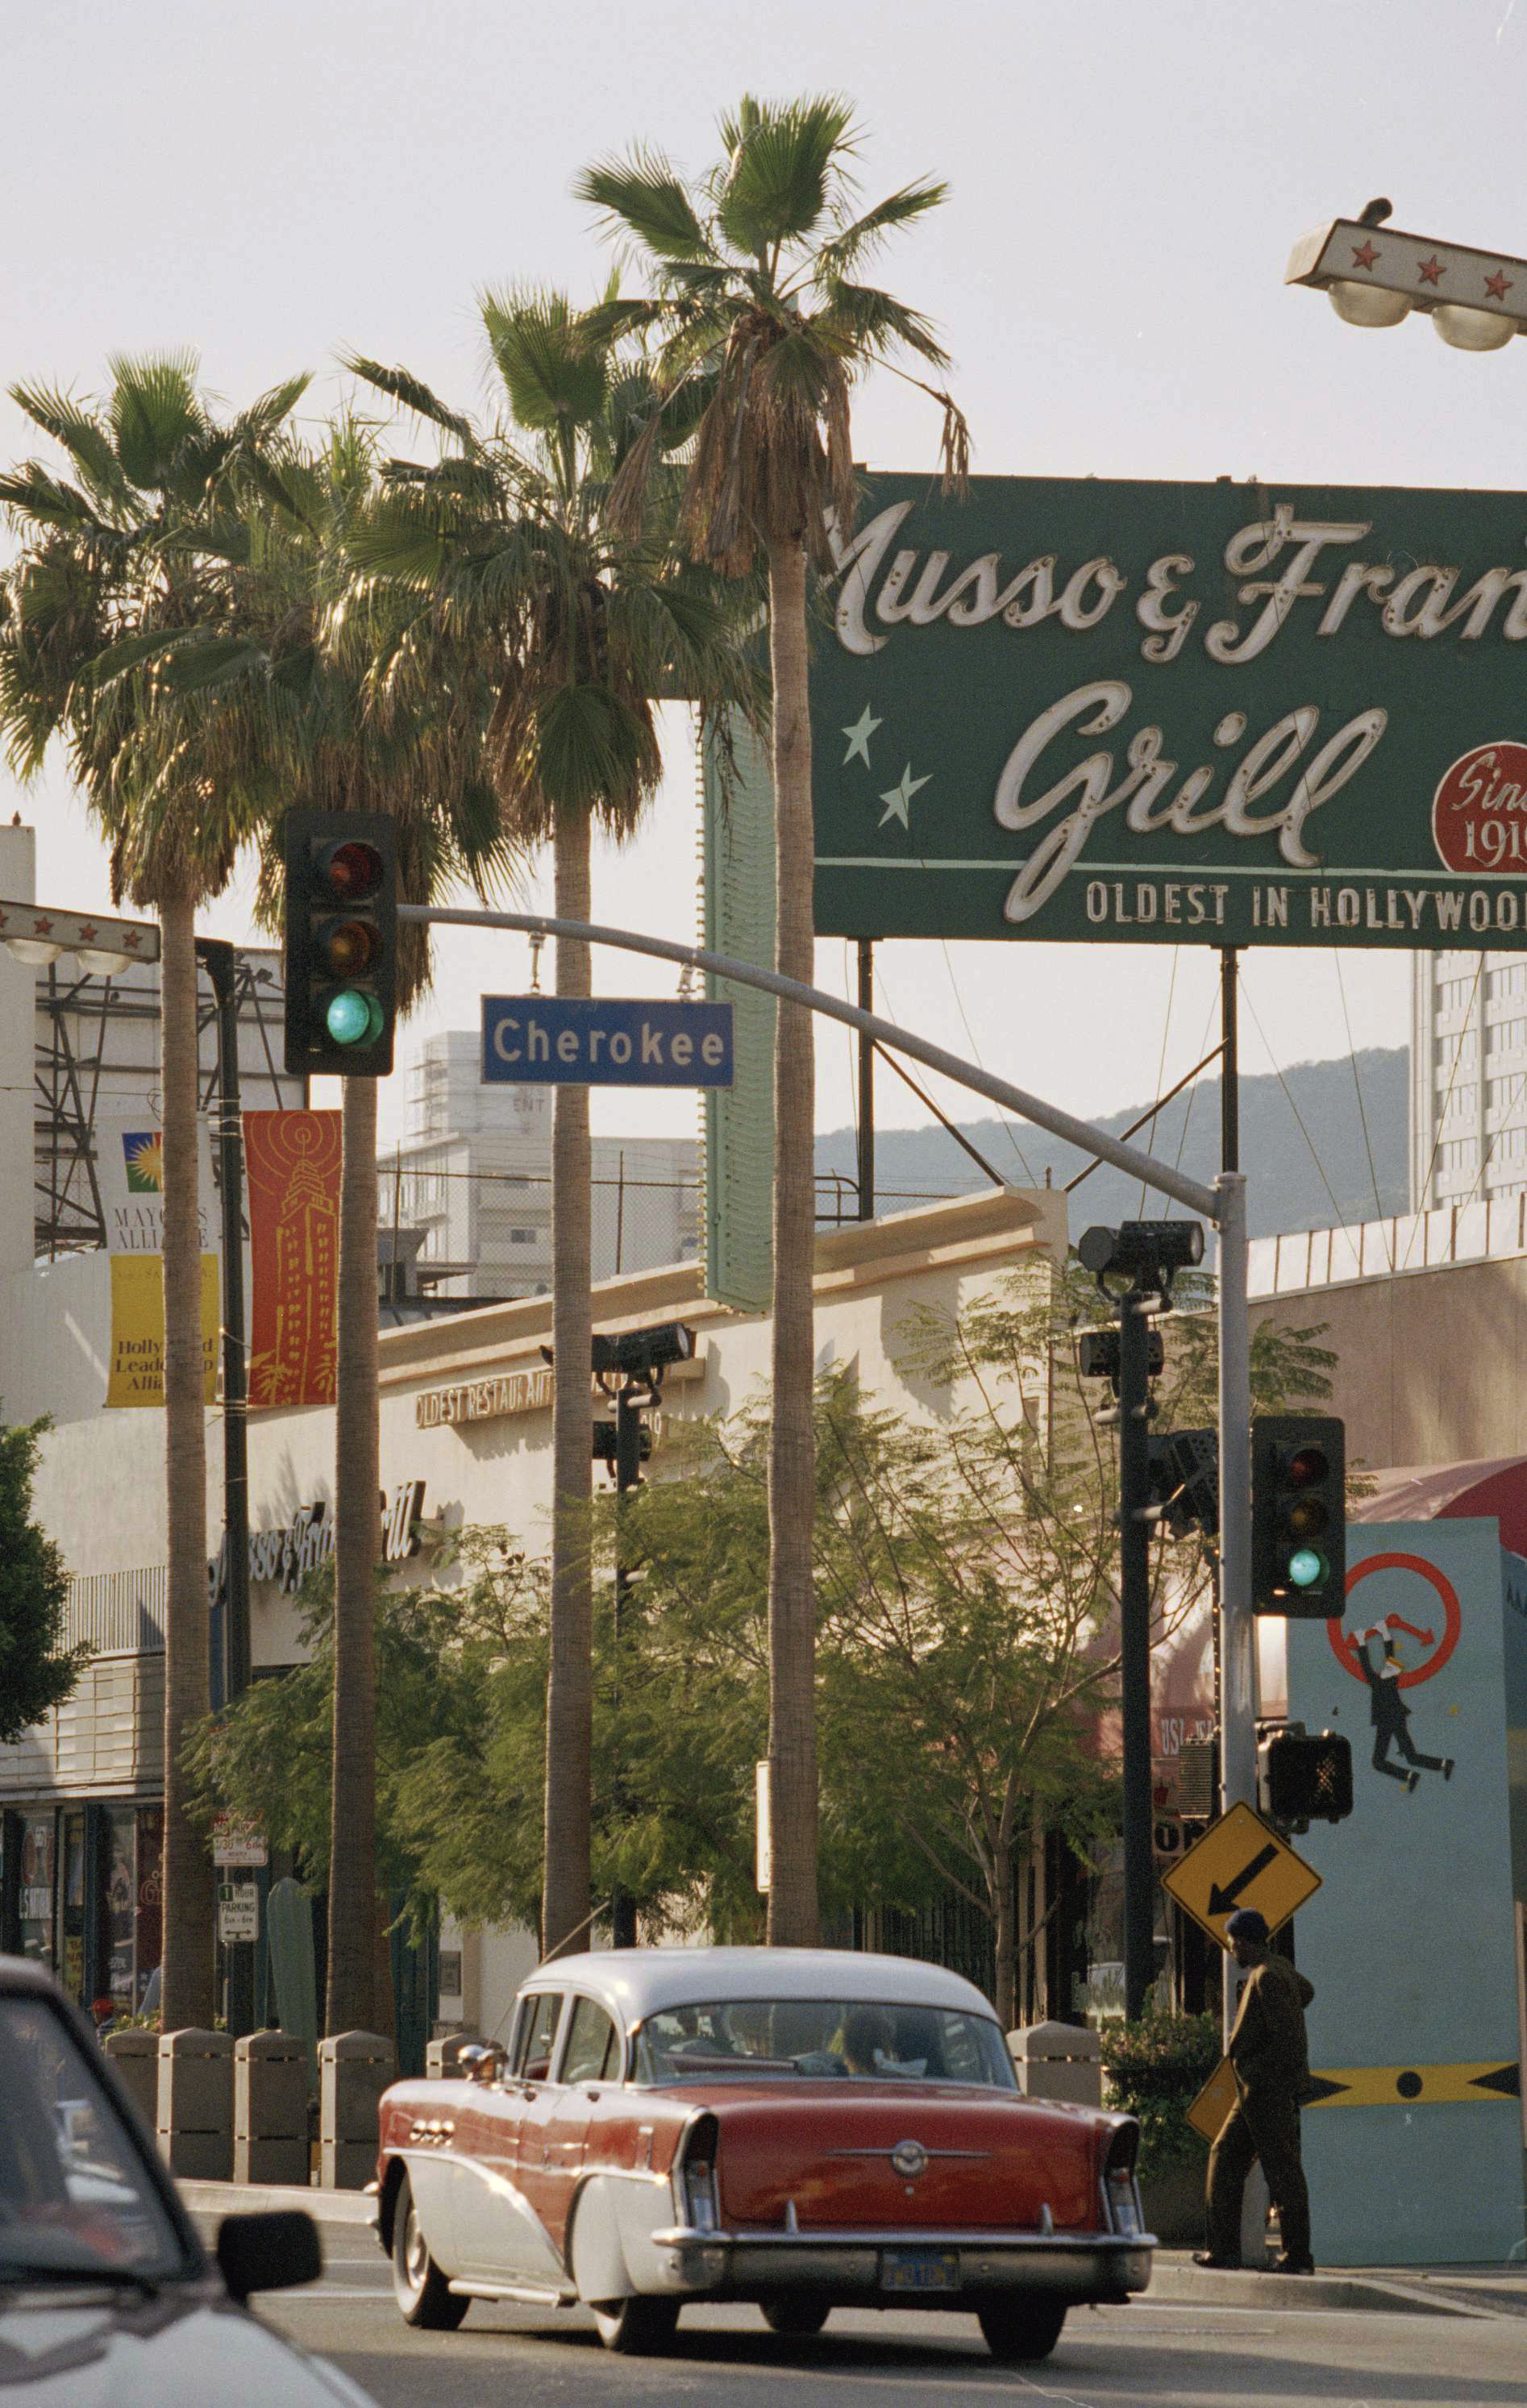 Musso & Frank Grill on Hollywood Boulevard.